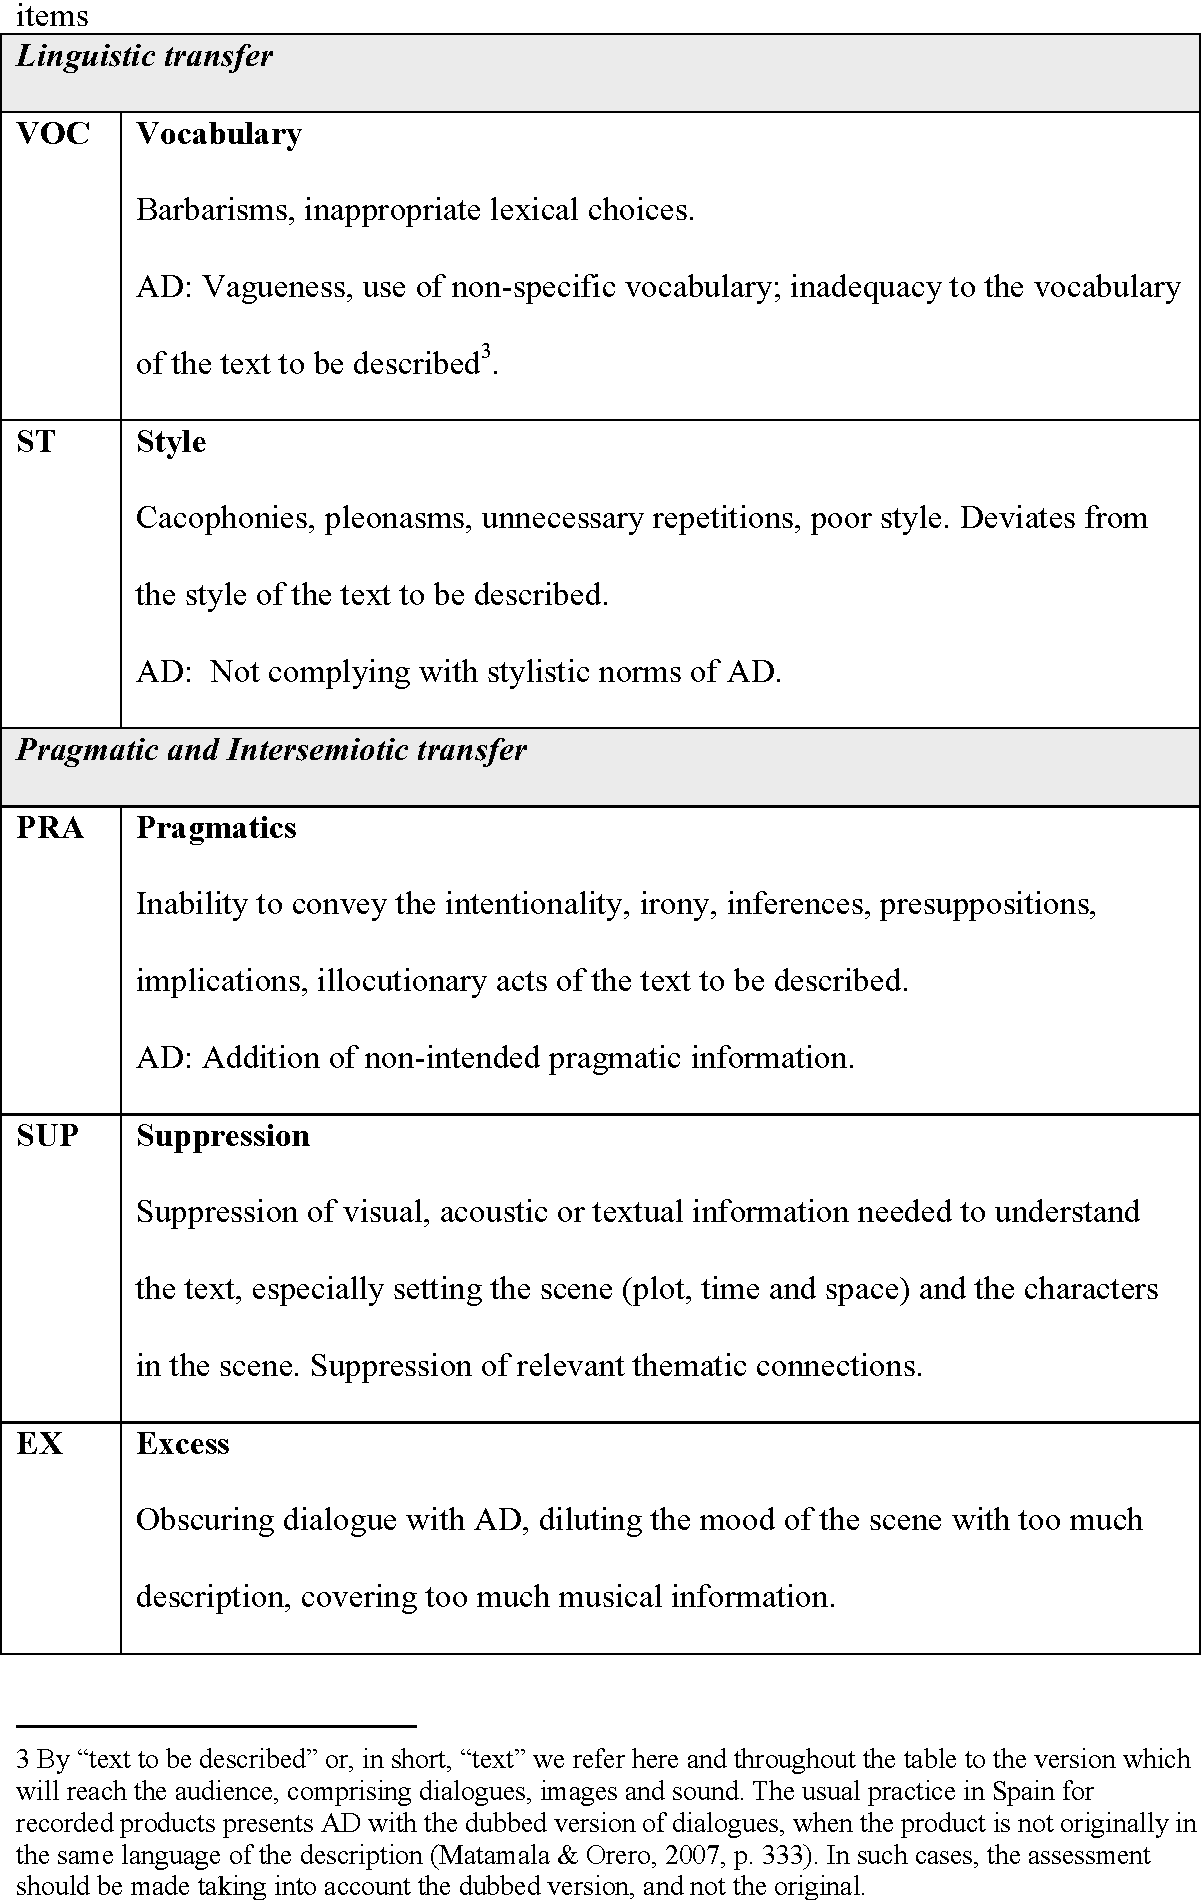 Table 1 from Evaluation criteria and film narrative. A frame to ...